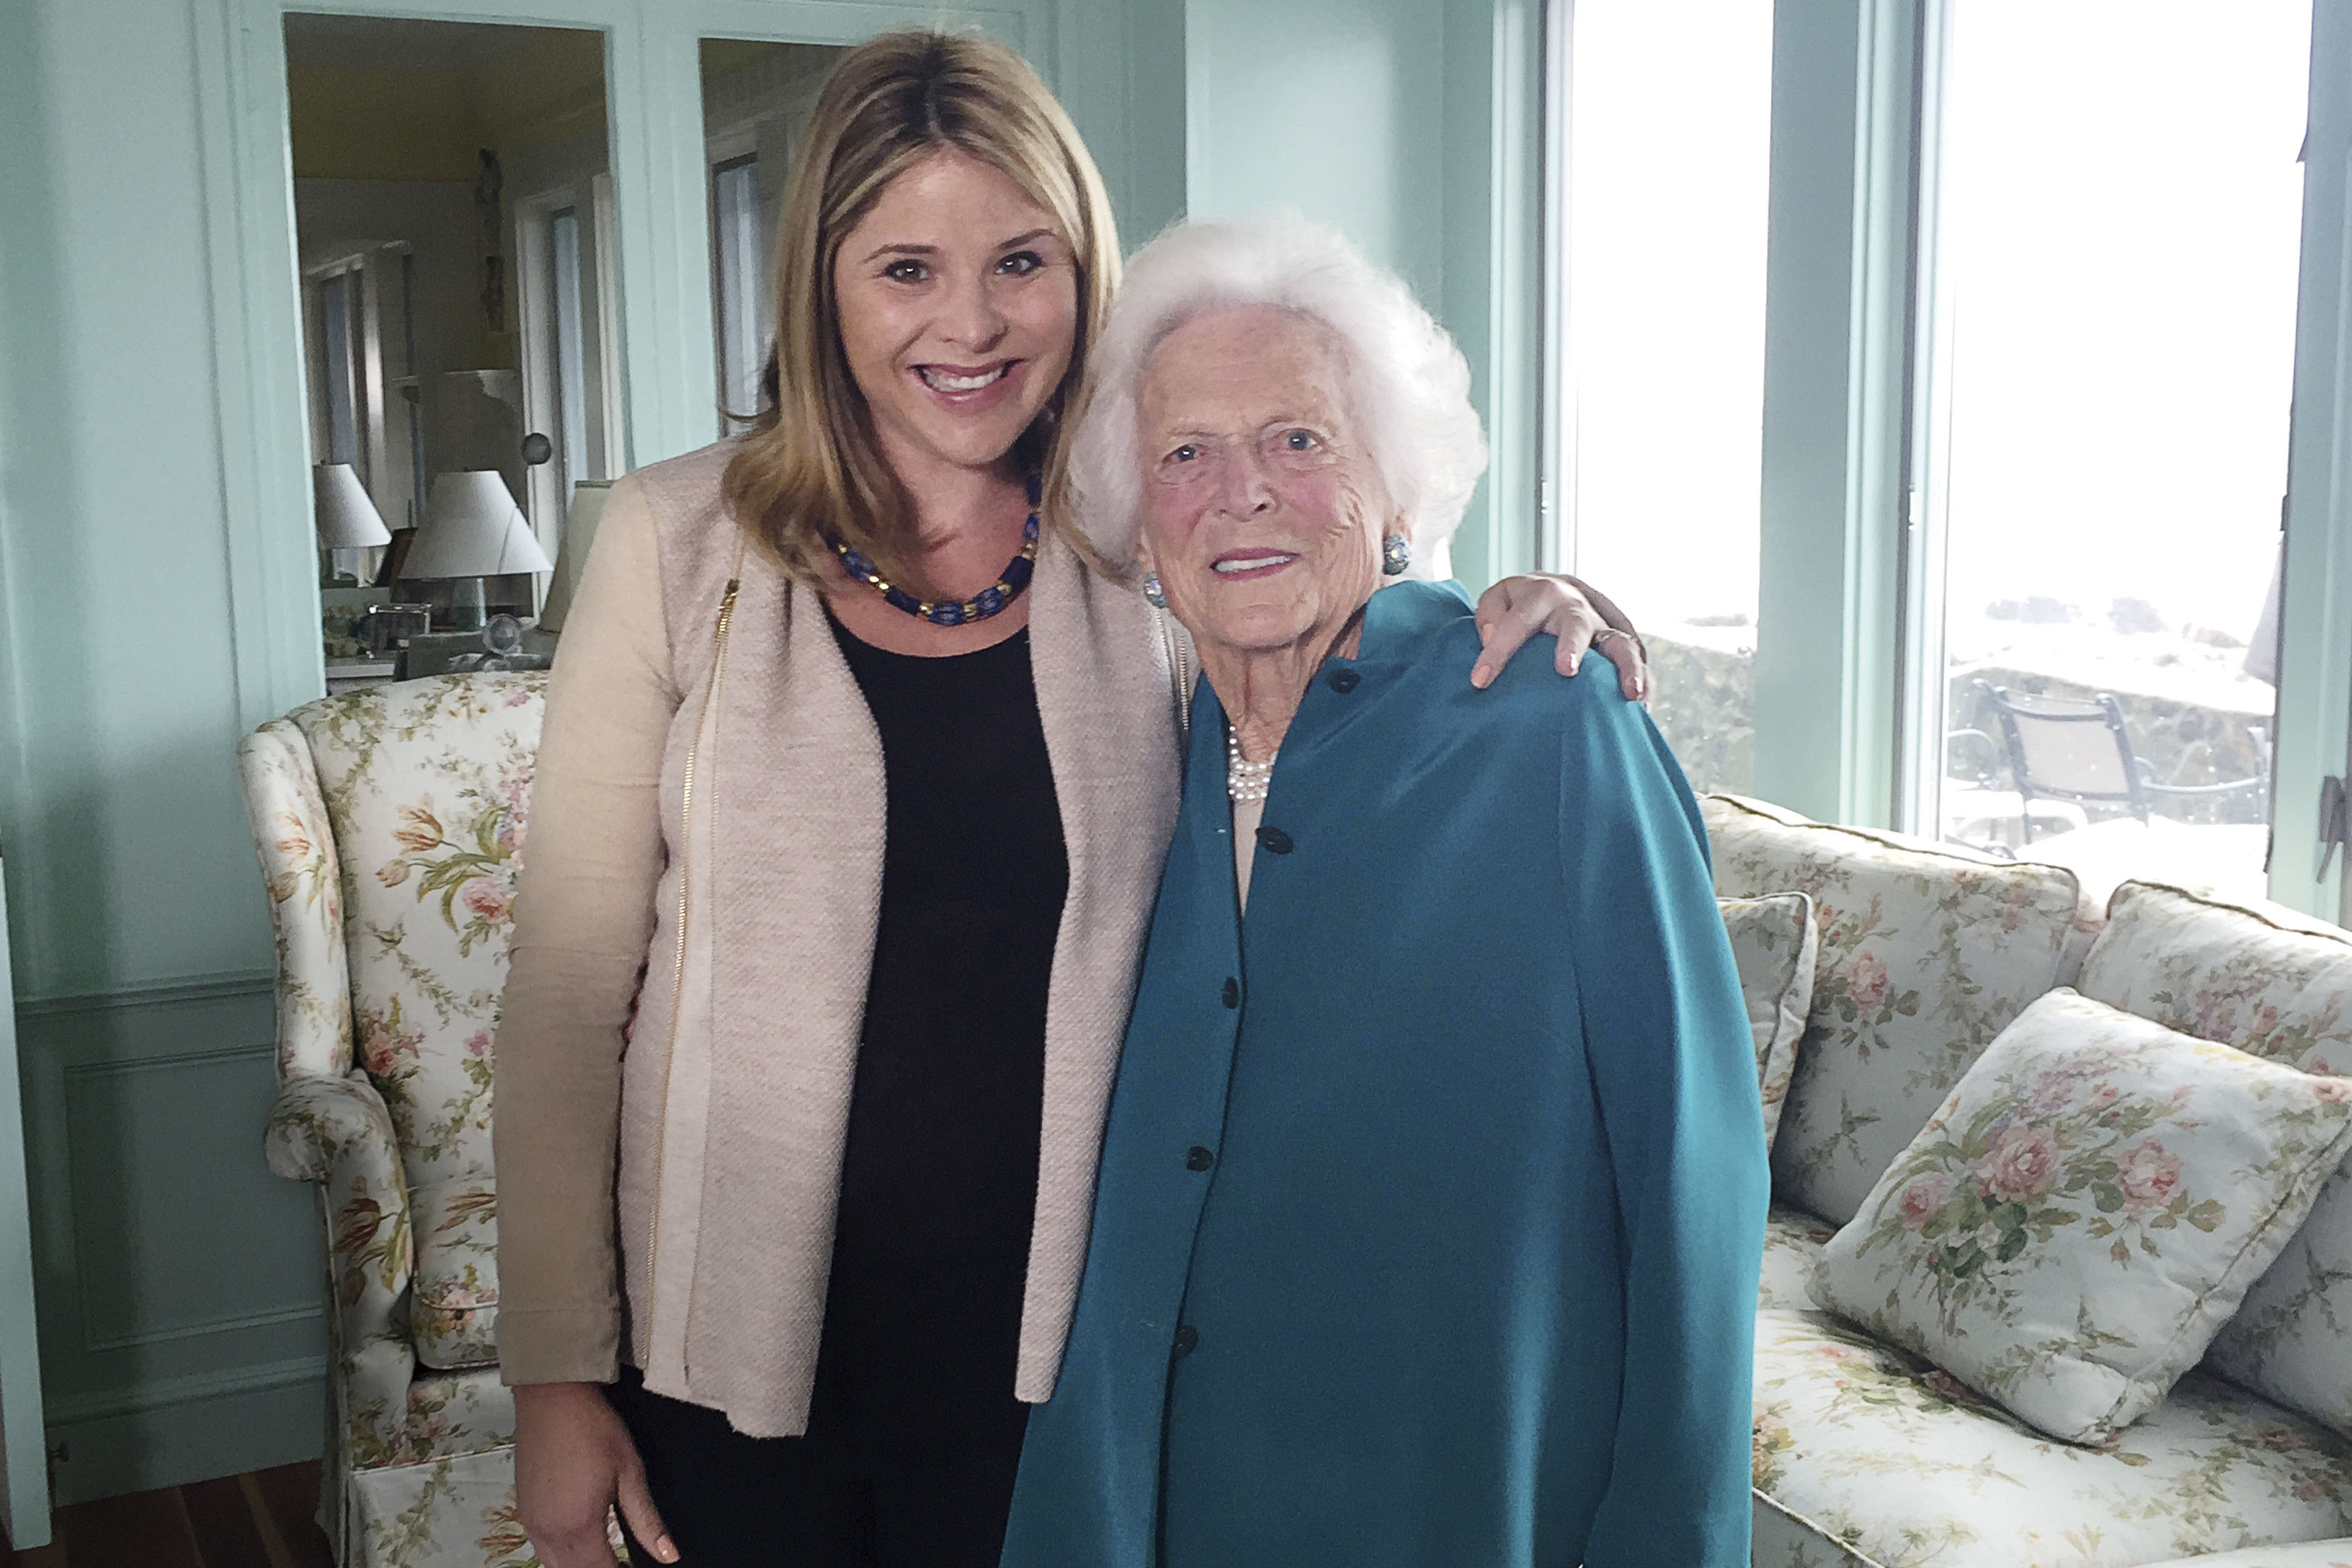 Jenna Bush Hager on Her Grandmother's Needlepoint Stockings– and Missing Her This Christmas